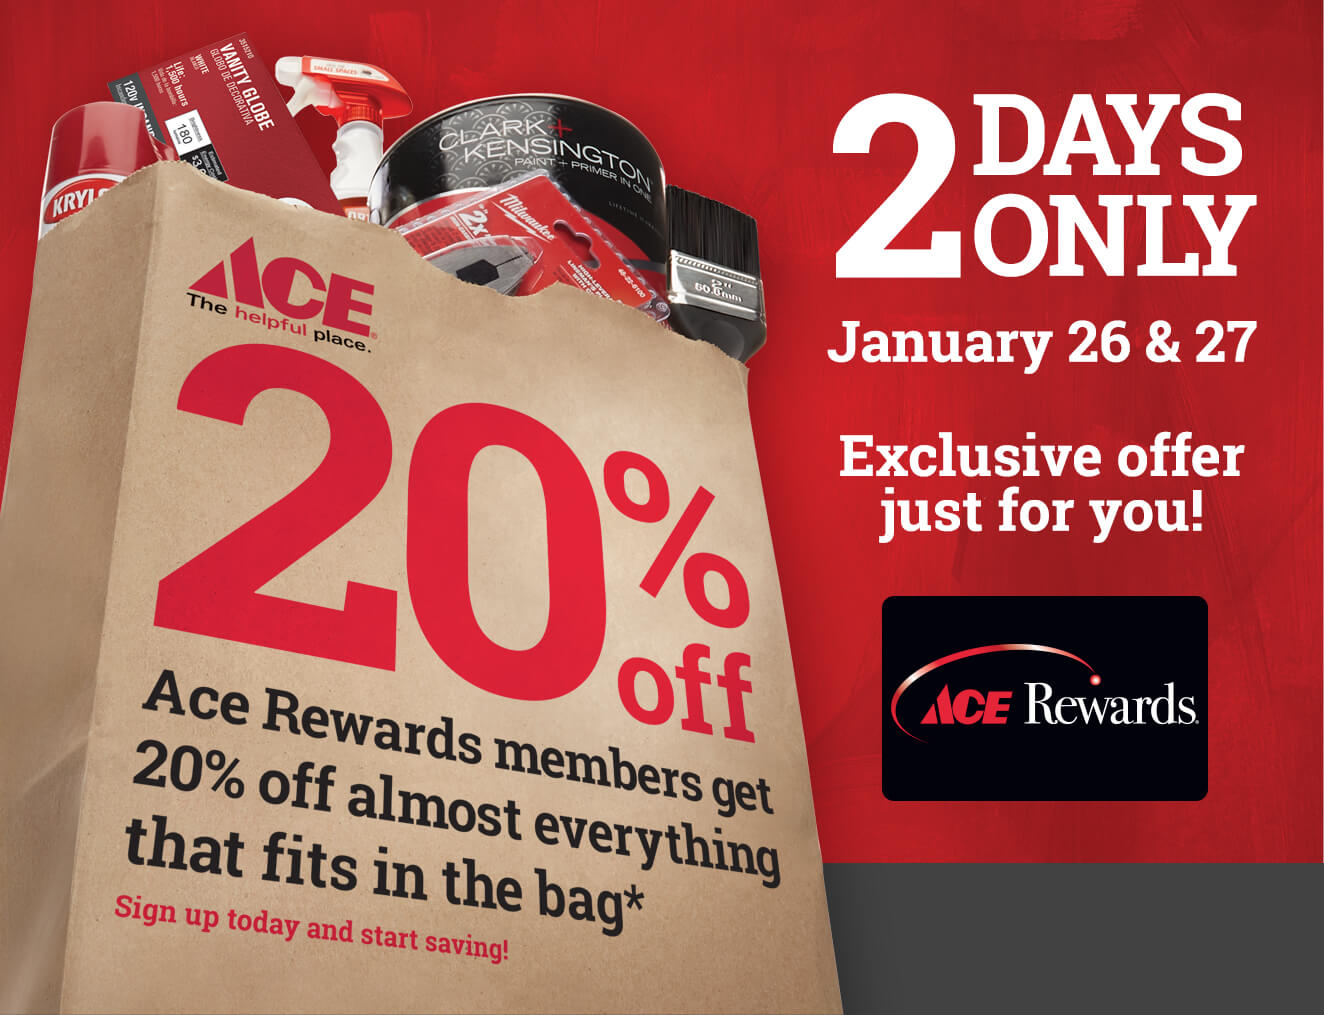 2 Days Only - January 26 & 27 - Exclusive offer just for you! Ace Rewards memebers get 20% off almost everything that fits in the bag* Sign up today and start saving!